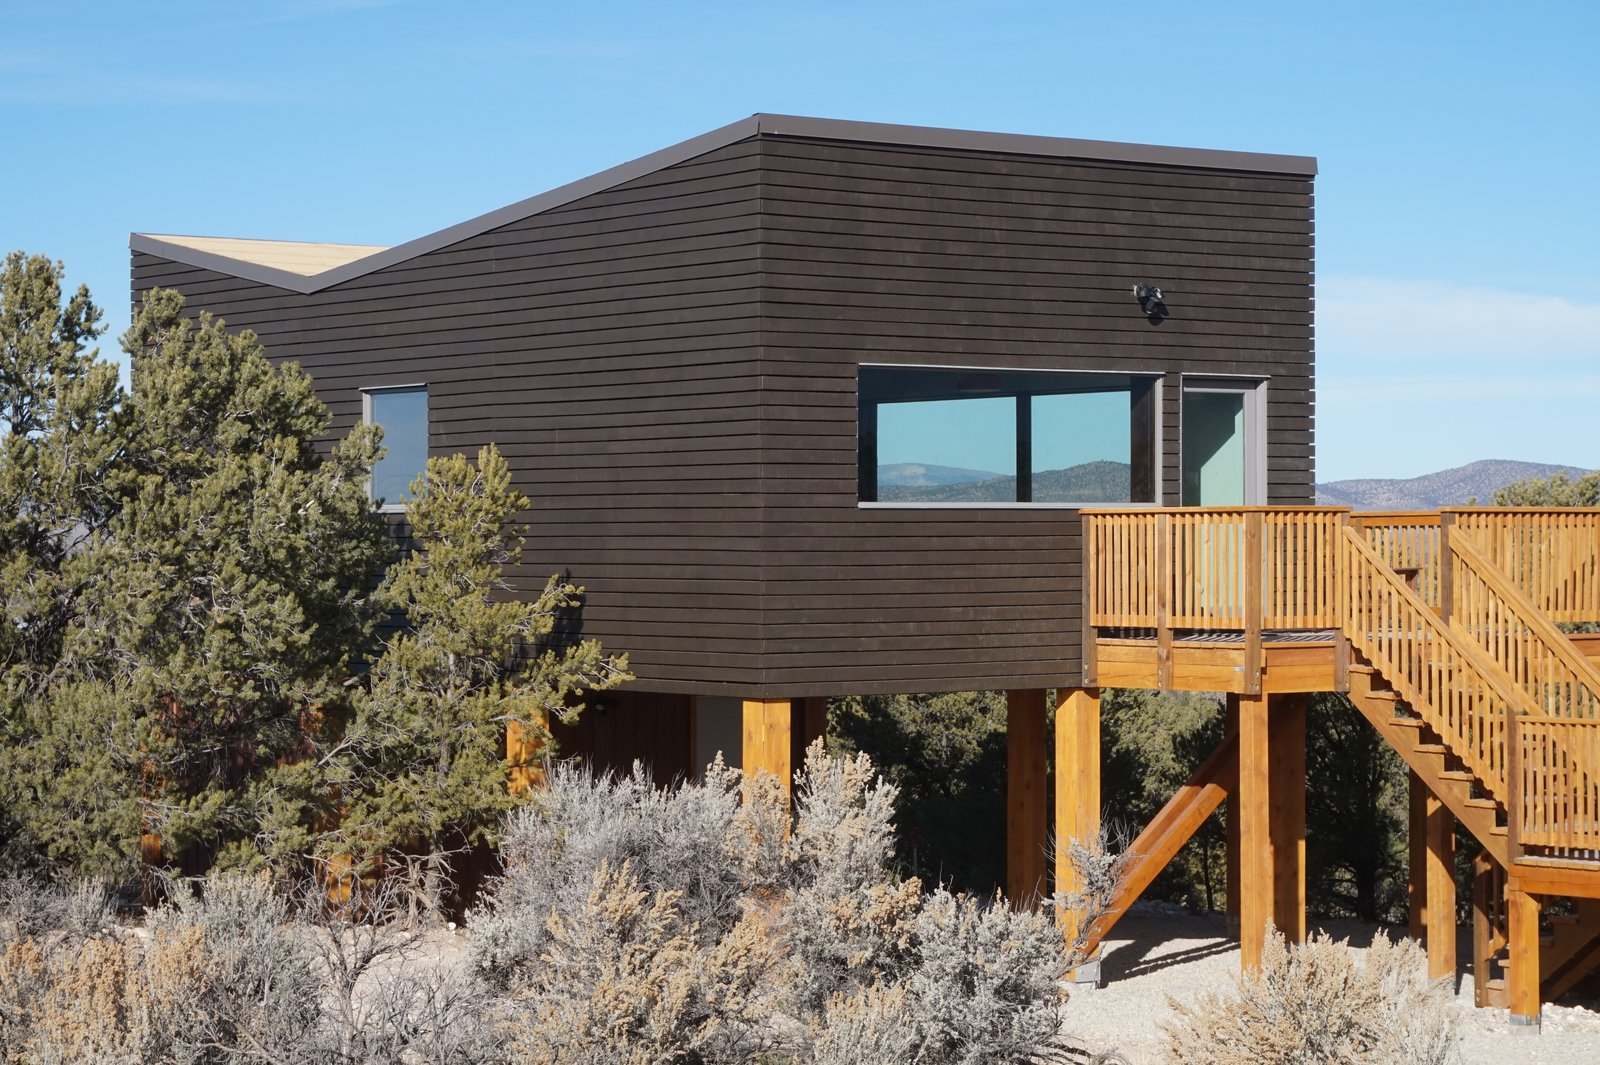 Exterior, Wood Siding Material, Green Roof Material, House Building Type, and Butterfly RoofLine Open joint wood siding cladding the super- insulated walls.  SkyNest by Joaquin Karcher